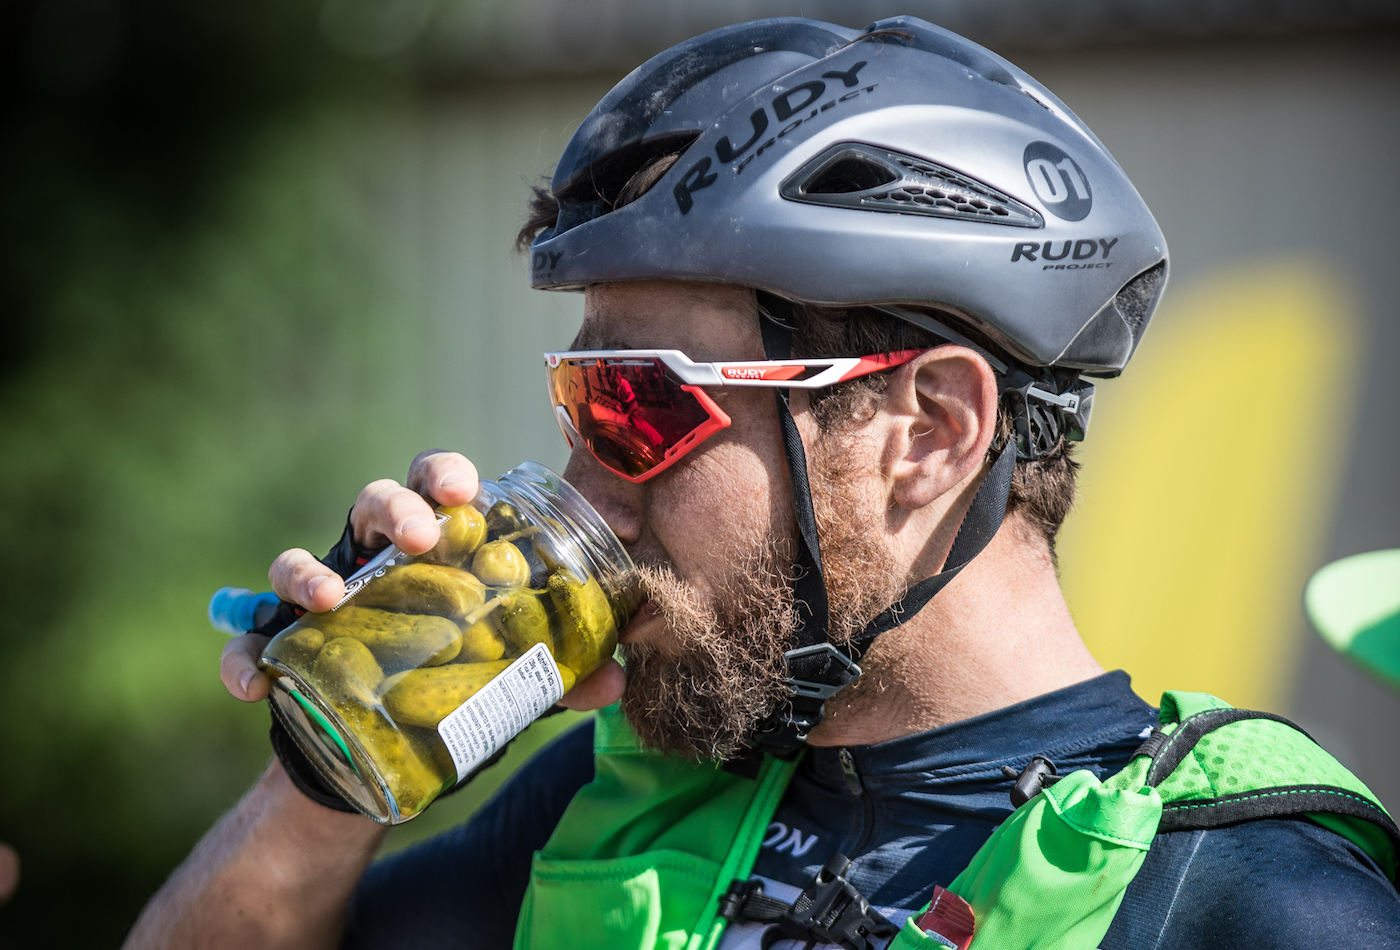 I was dreaming of pickle juice for most of the ride